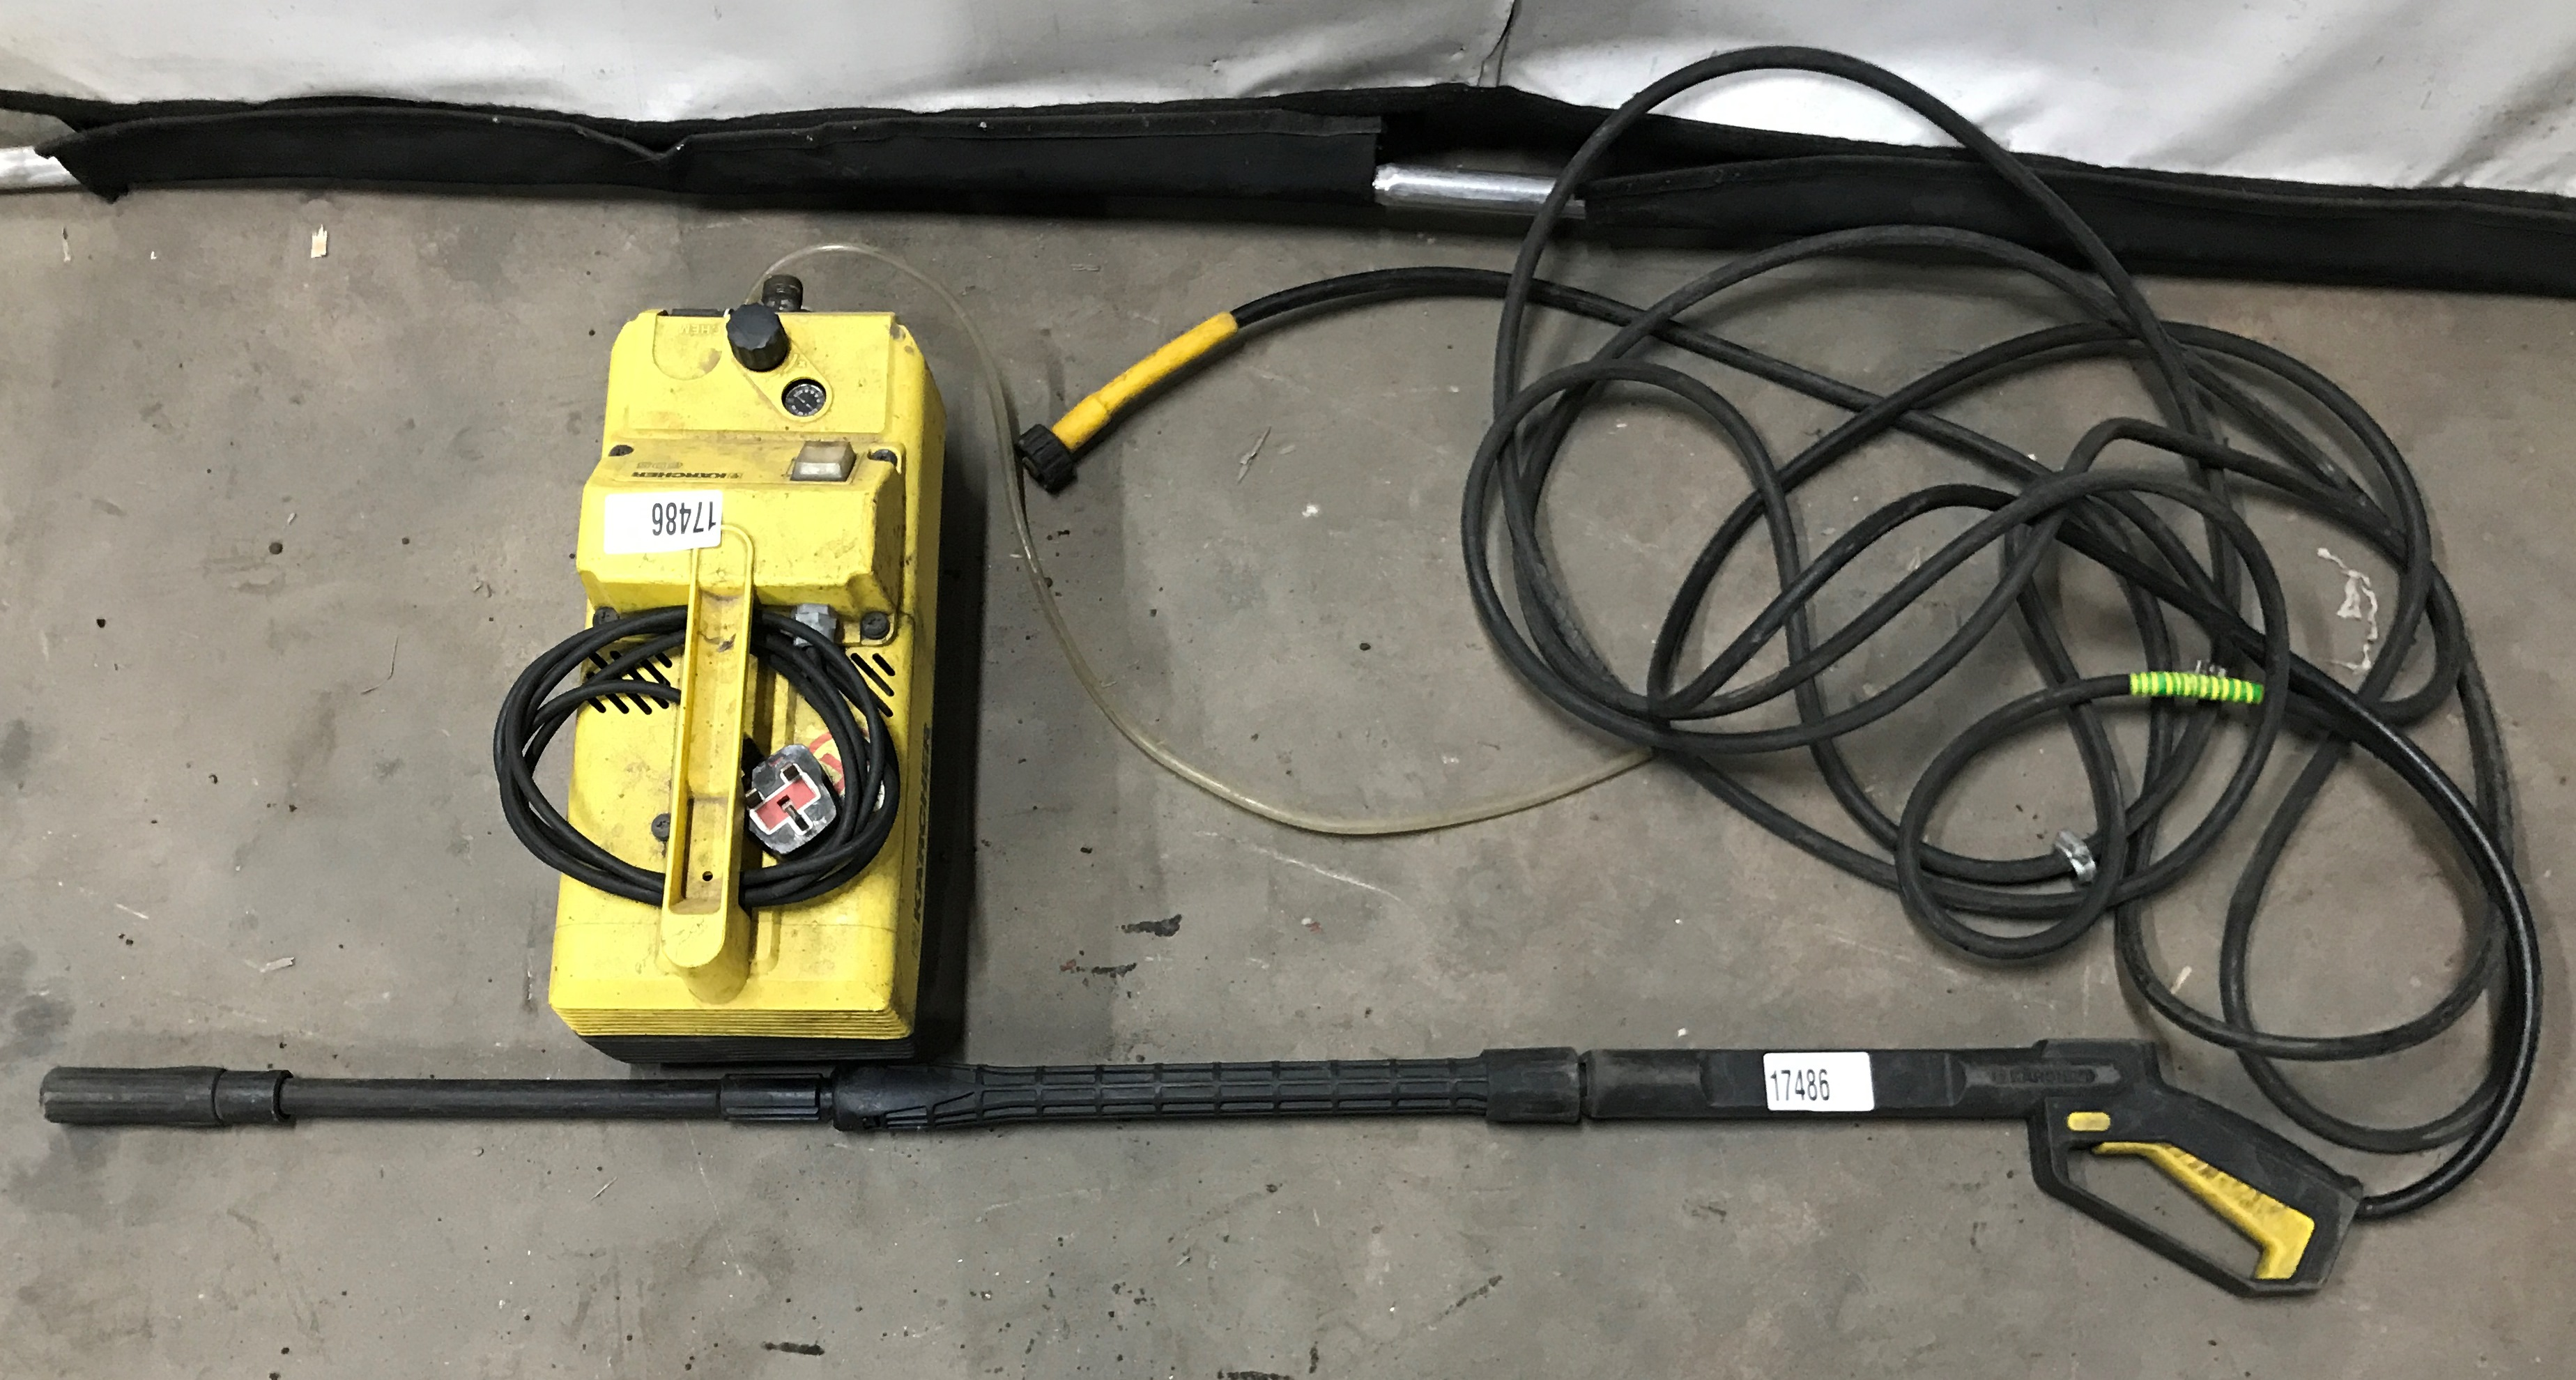 Karcher 695 Pressure WasherModel: 695Serial No: 089369This lot is